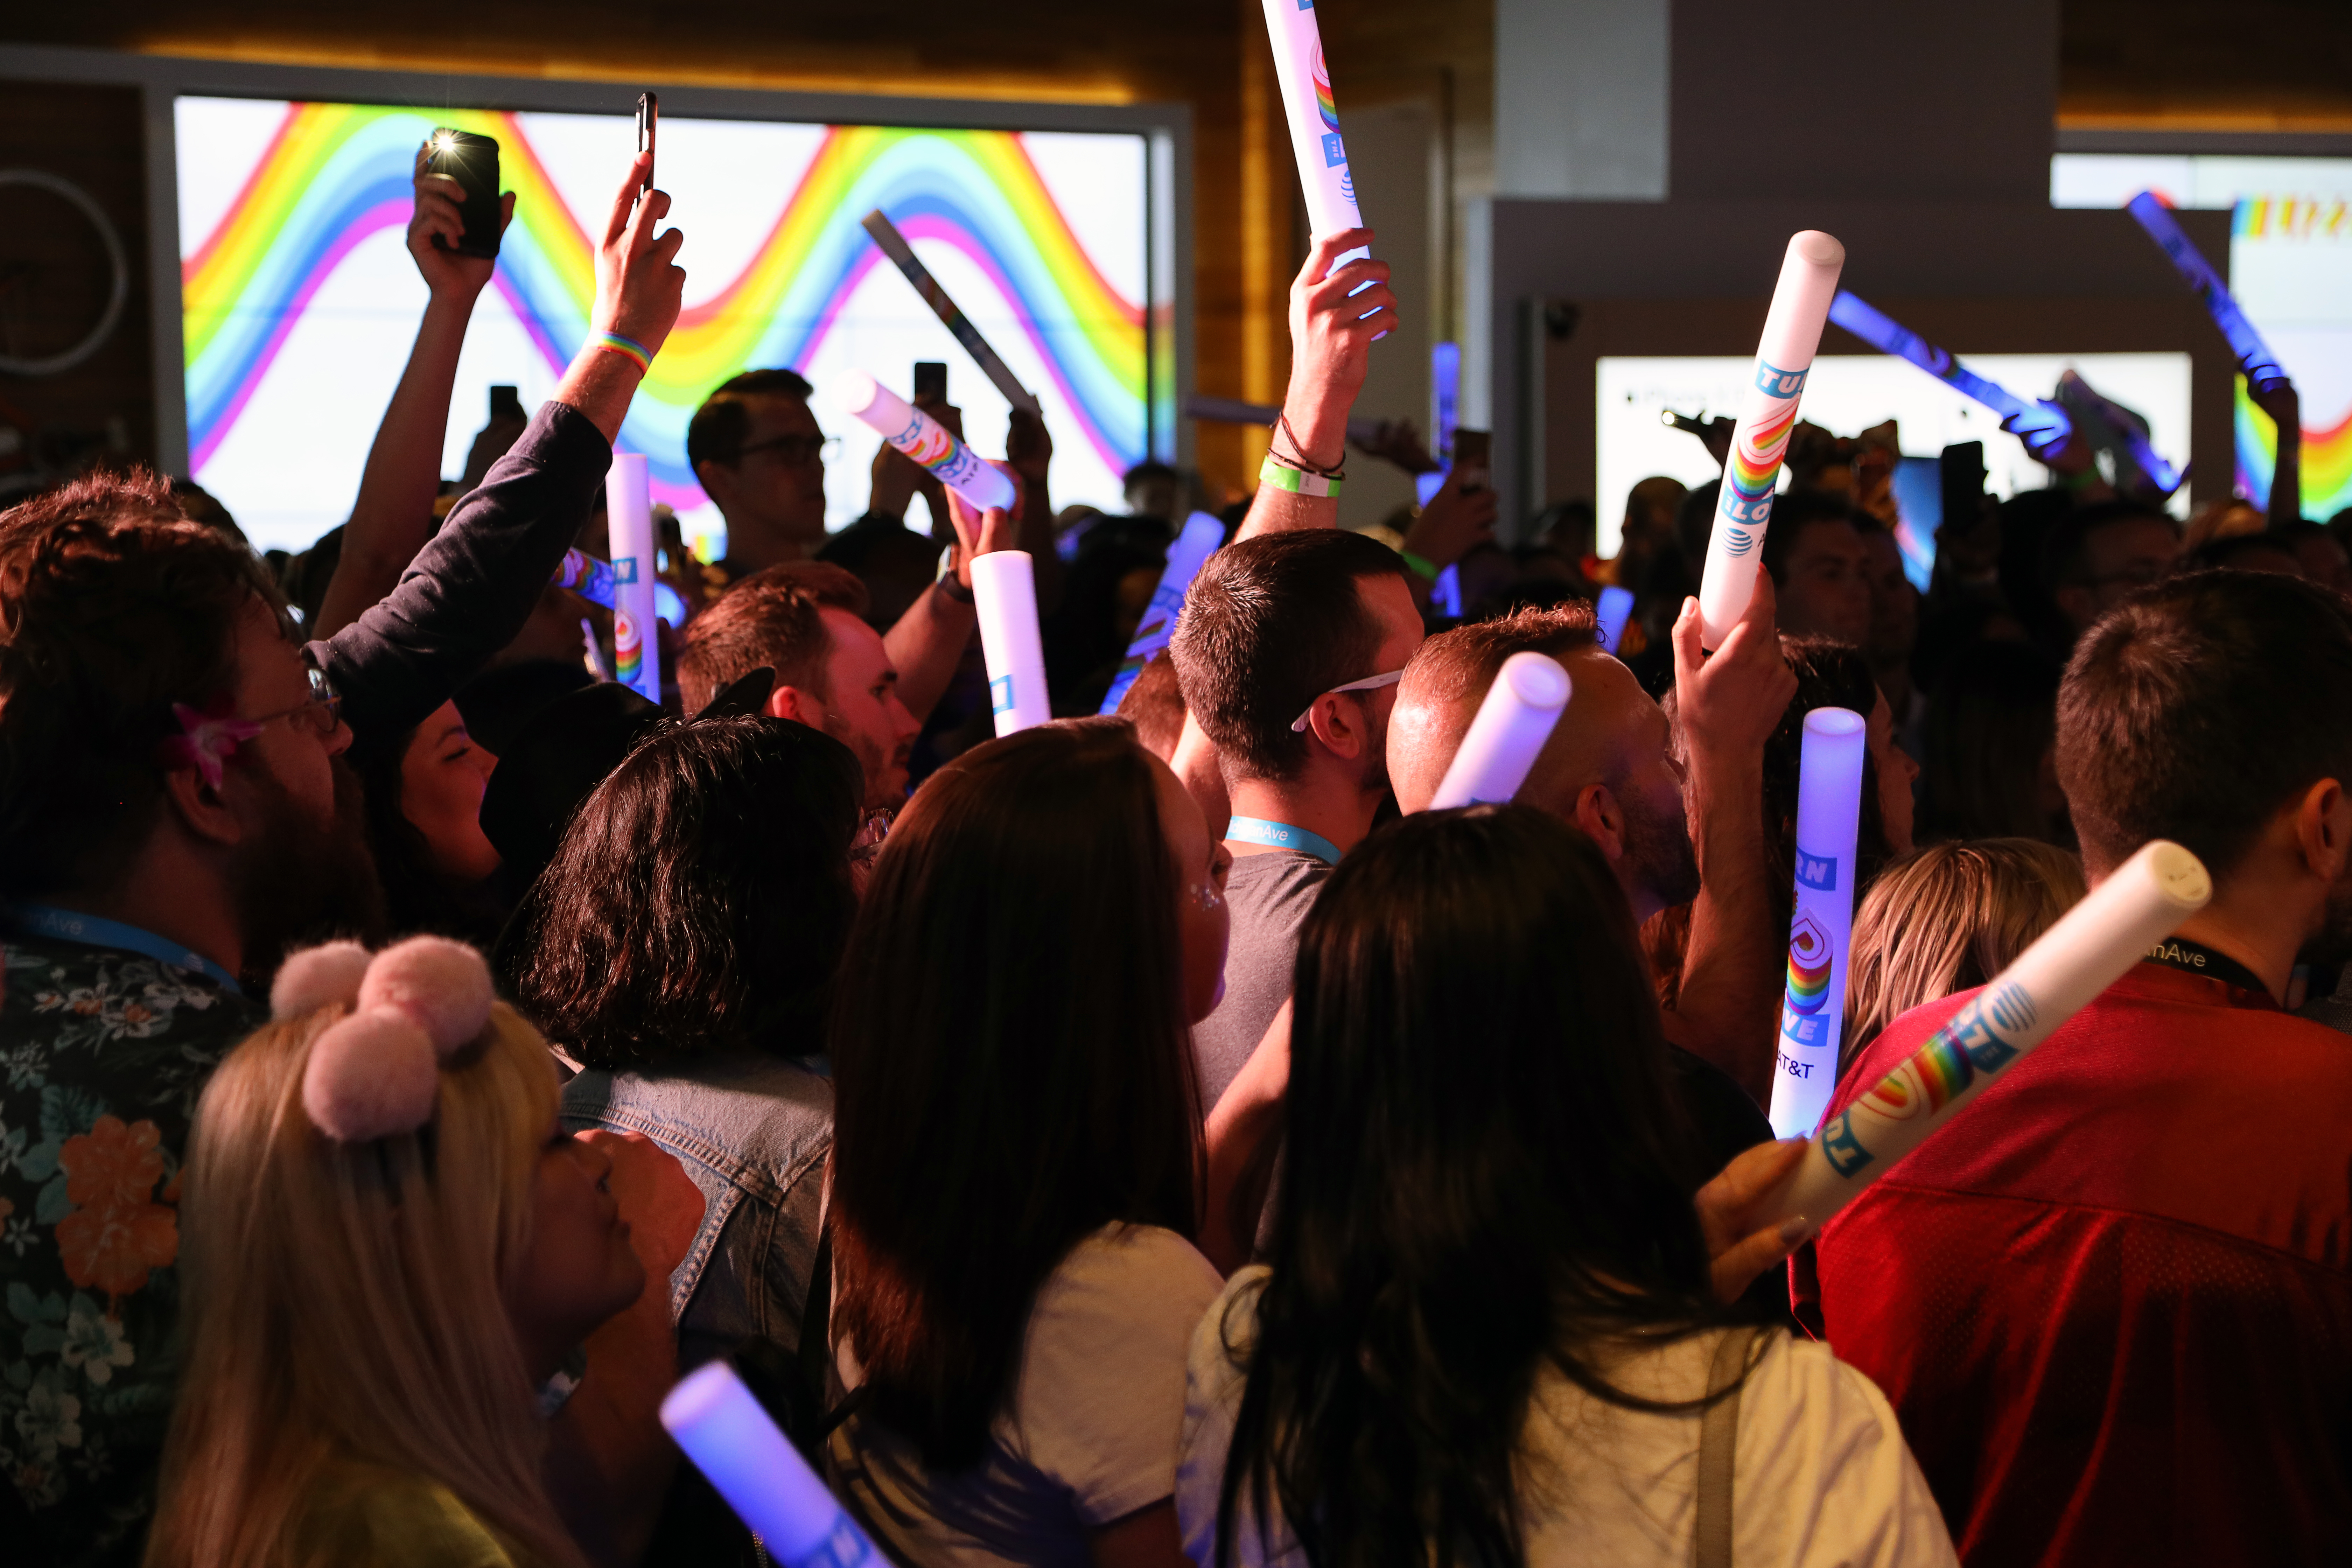 Fans at TurnUpTheLove event